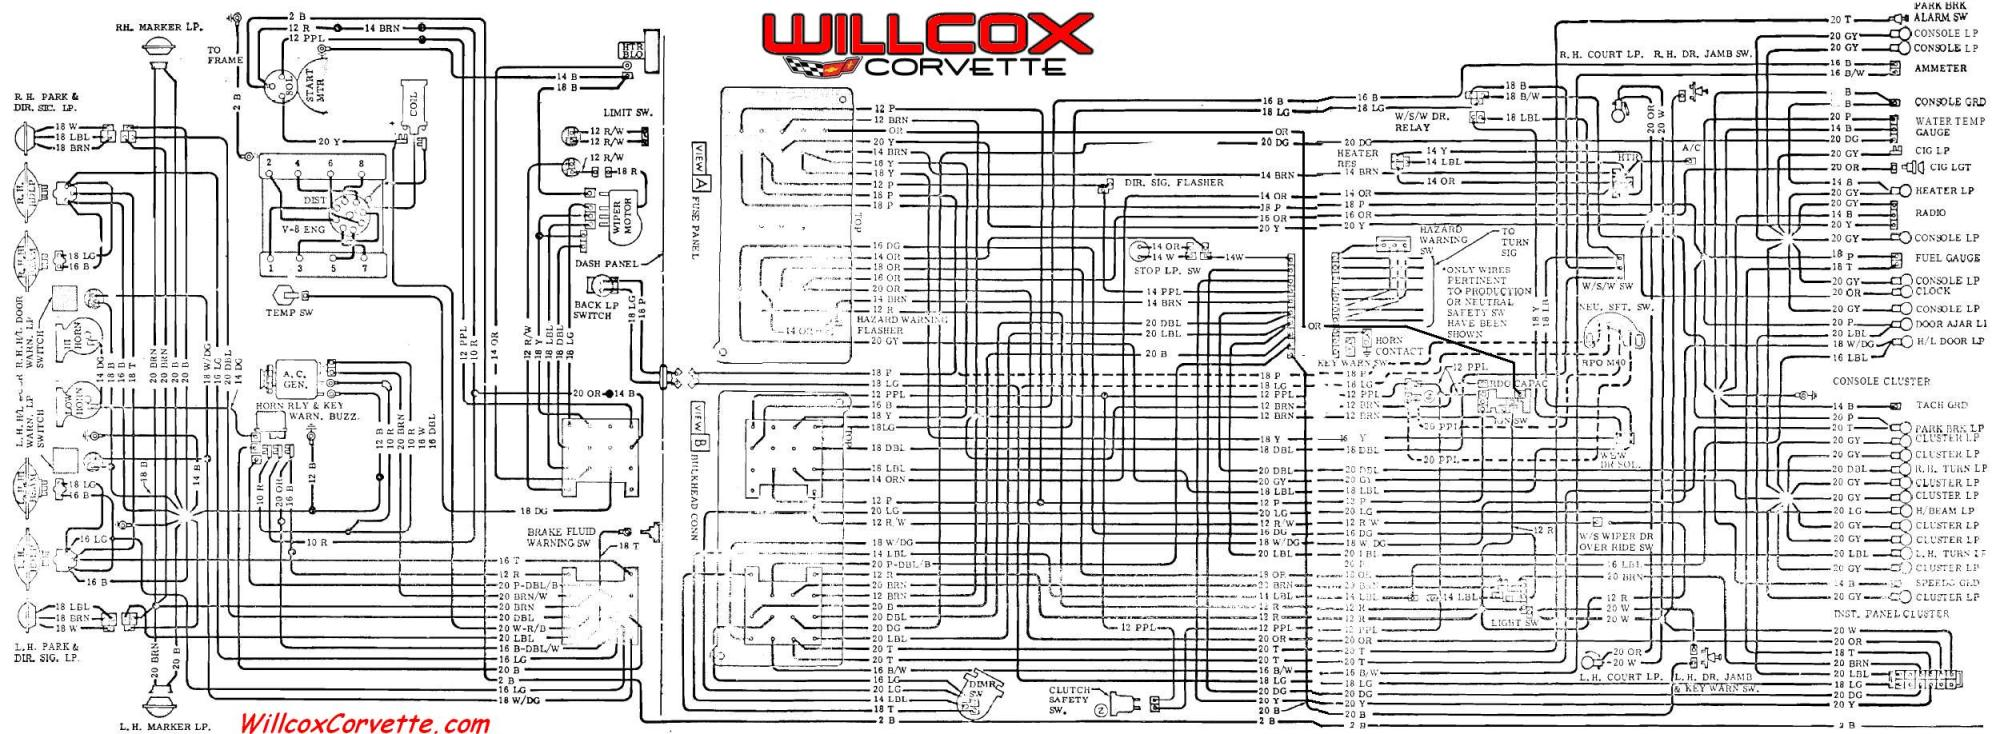 hight resolution of 1968 corvette wiring harness wiring diagrams one 1968 corvette wiring harness diagram  [ 2000 x 734 Pixel ]